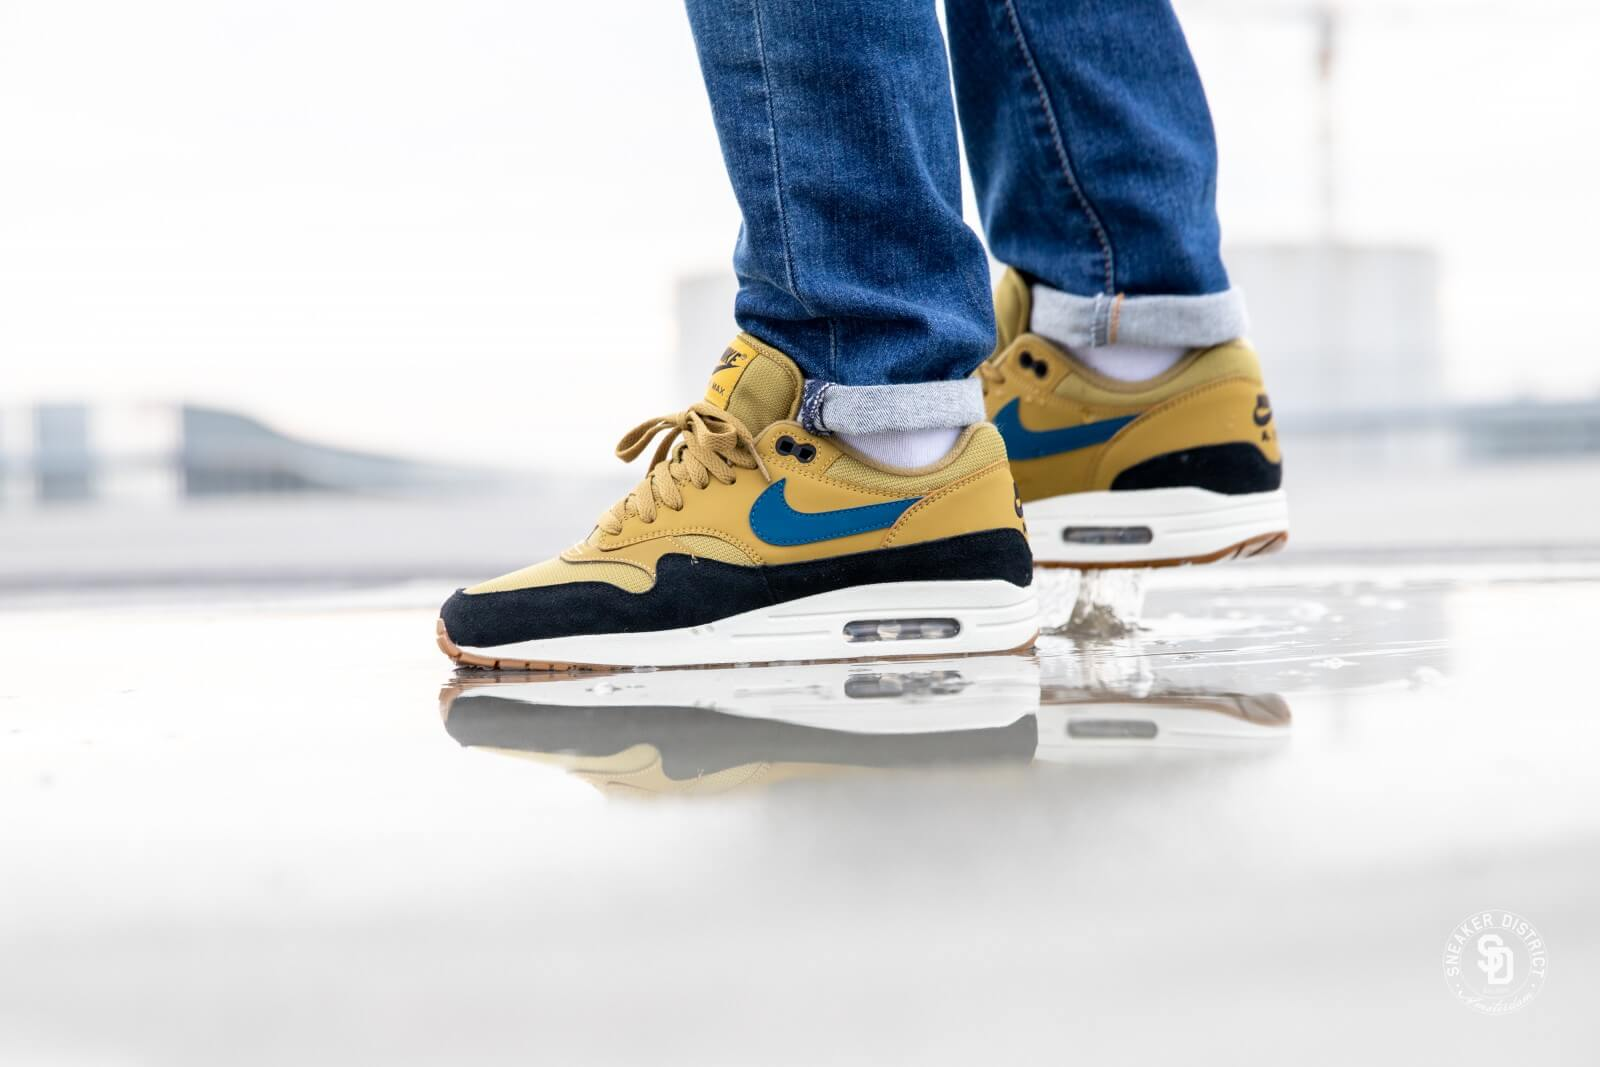 Nike Air Max 1 Golden MossBlue Force Black AH8145 302